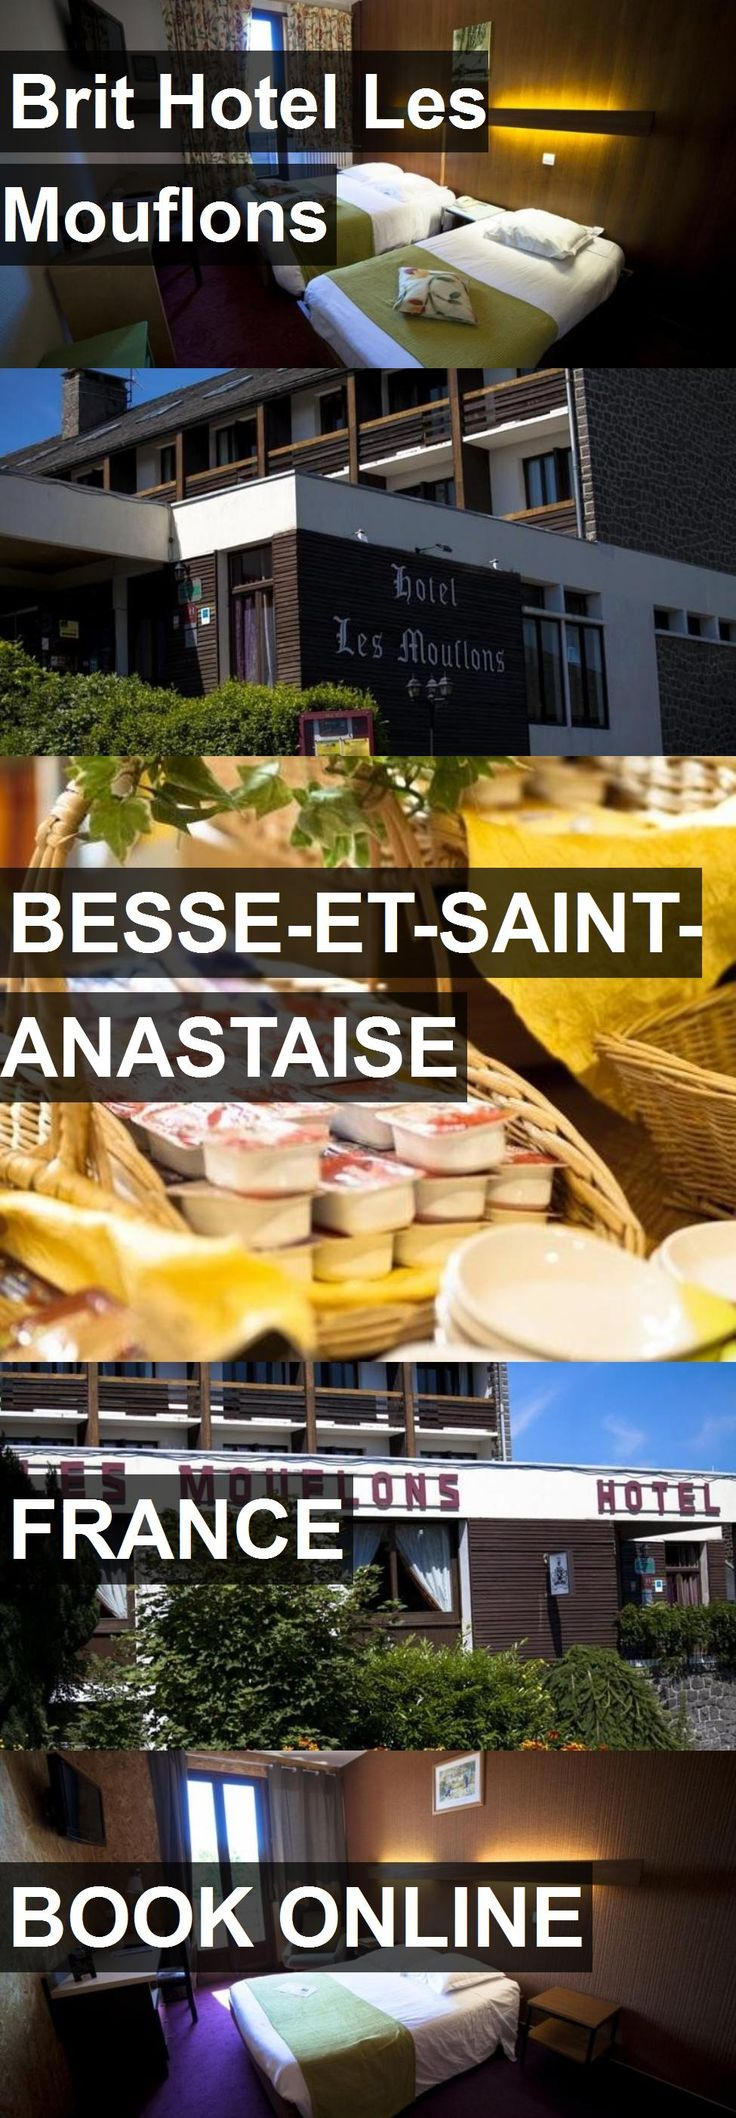 Hotel Brit Hotel Les Mouflons in Besse-et-Saint-Anastaise, France. For more information, photos, reviews and best prices please follow the link. #France #Besse-et-Saint-Anastaise #BritHotelLesMouflons #hotel #travel #vacation